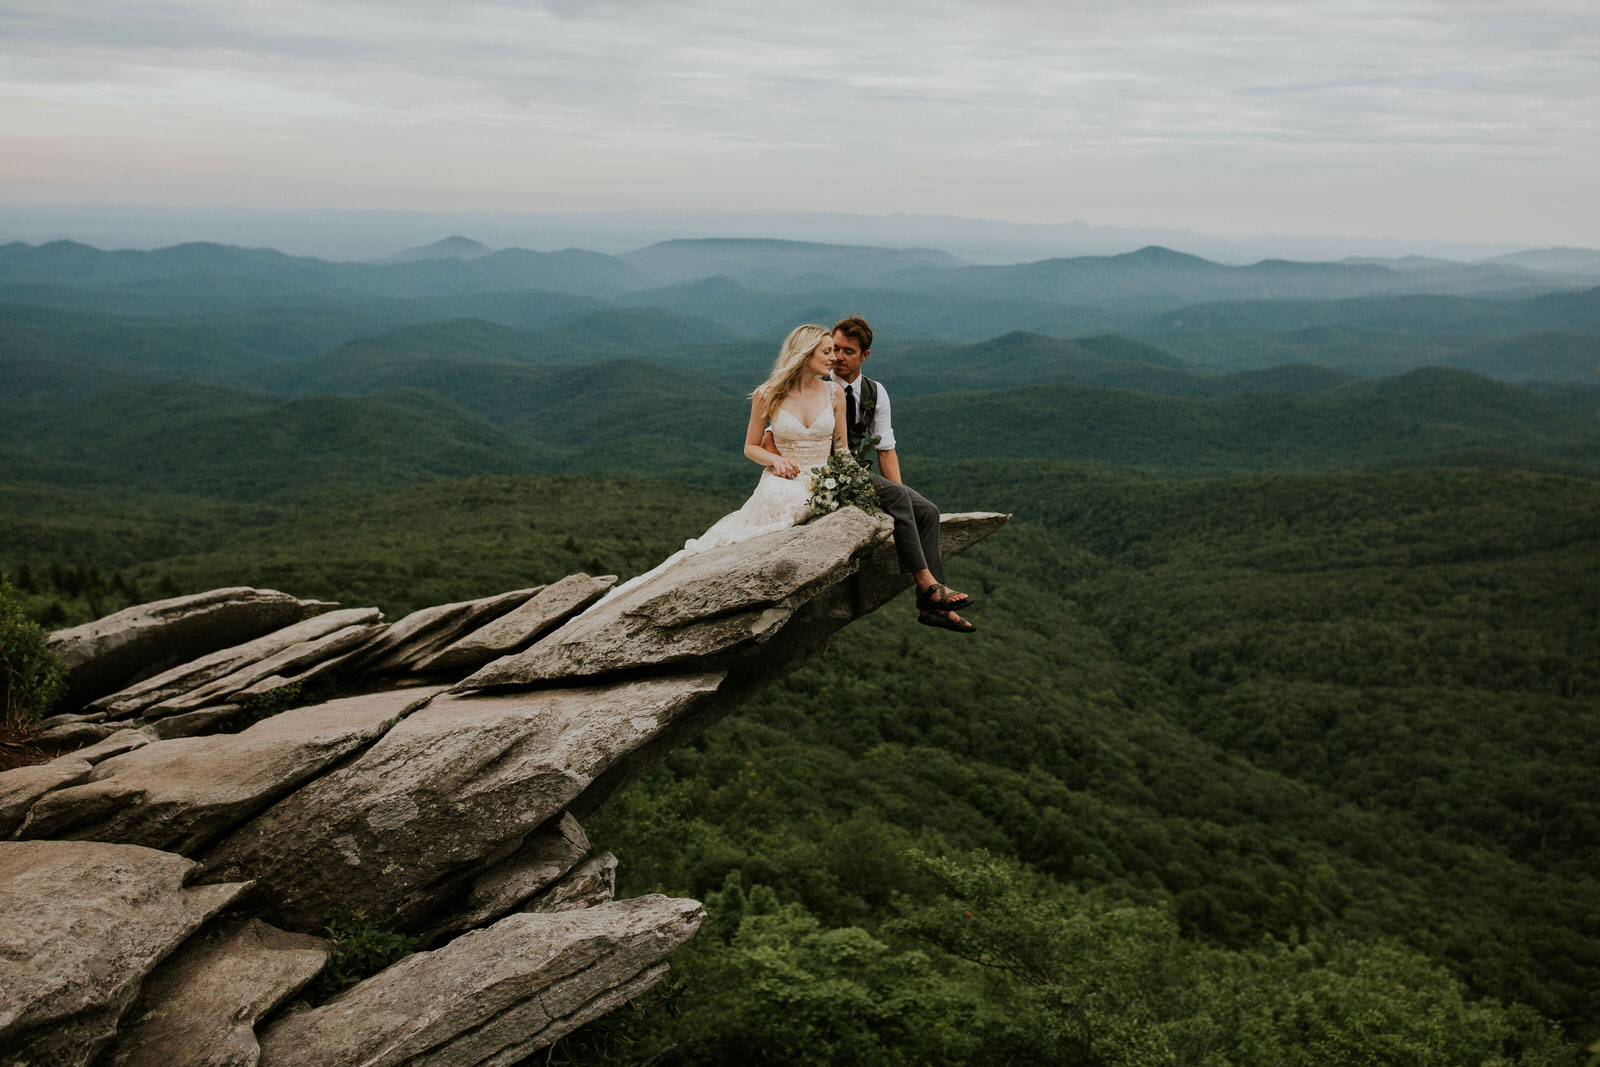 Climbing on the Blue Ridge Parkway by Hanna Wilson